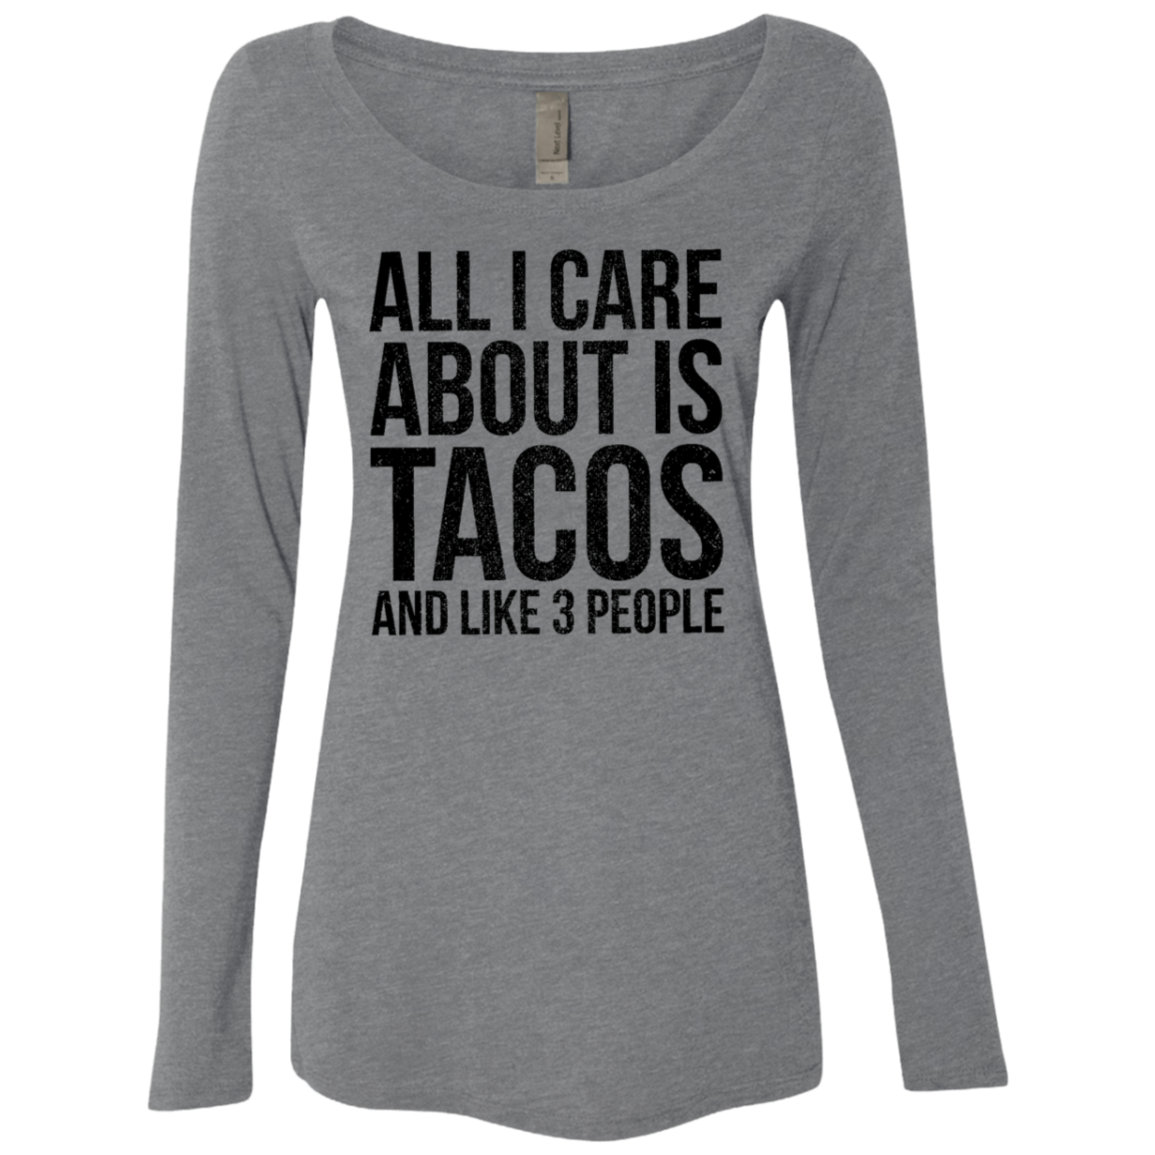 All I Care About is Tacos and Like 3 People Women's Long Sleeve Tee - Trendy Tees